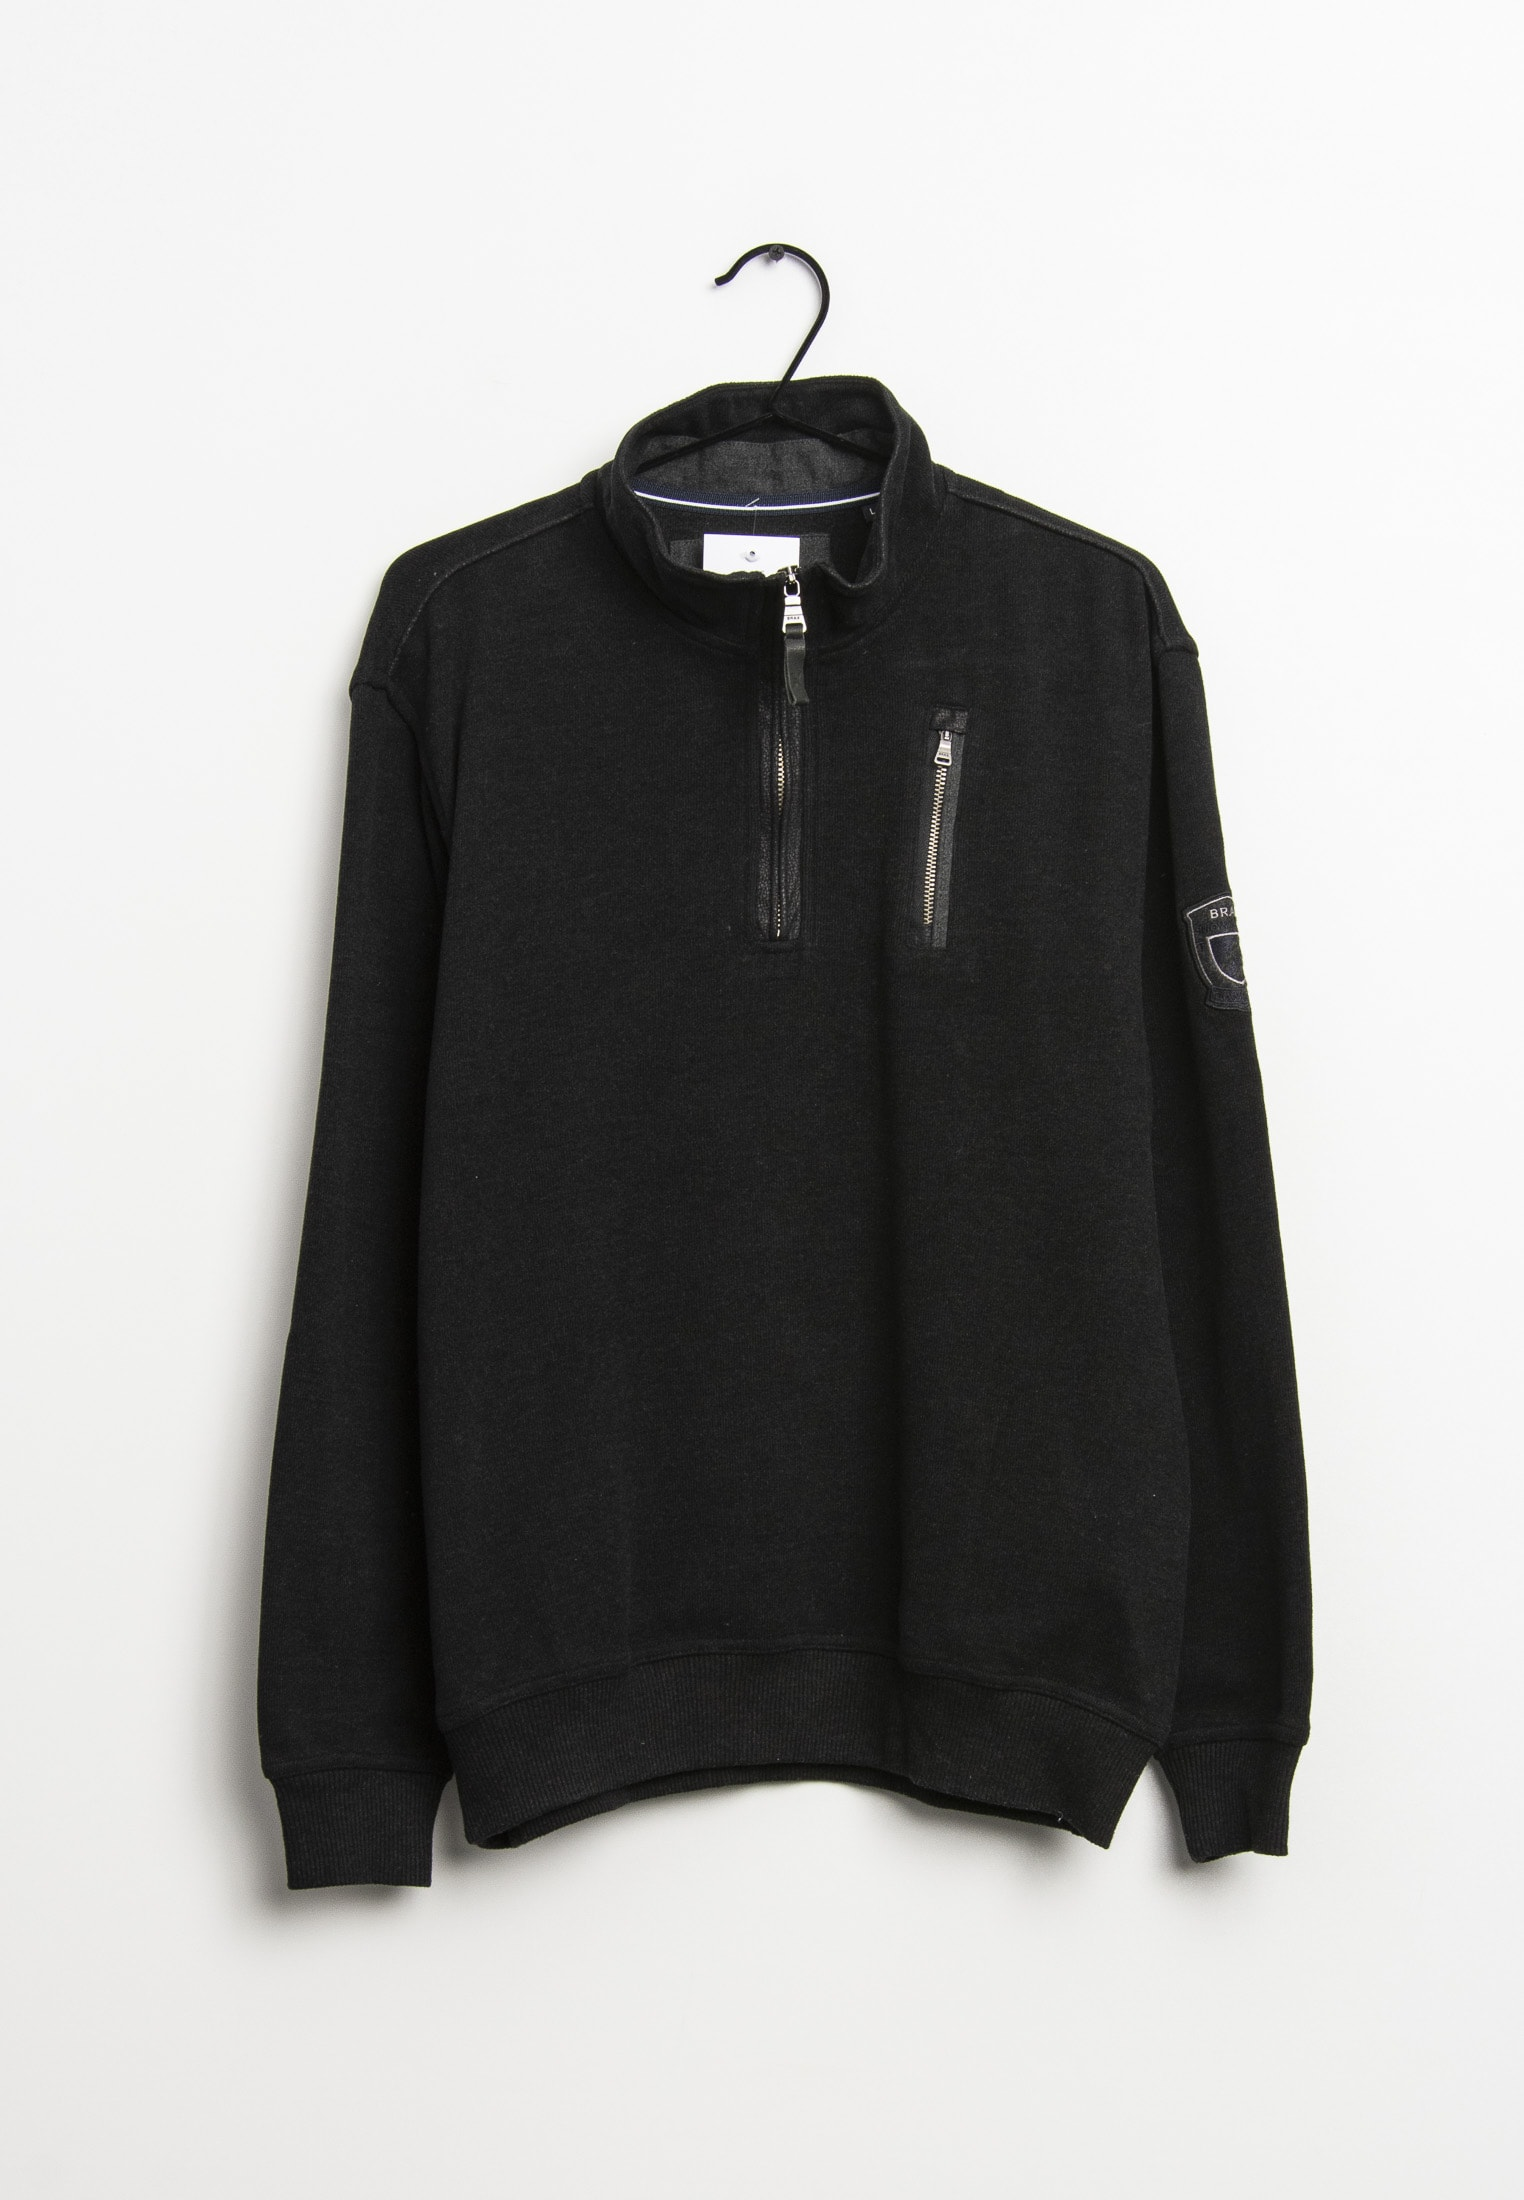 BRAX Sweat / Fleece Schwarz Gr.L